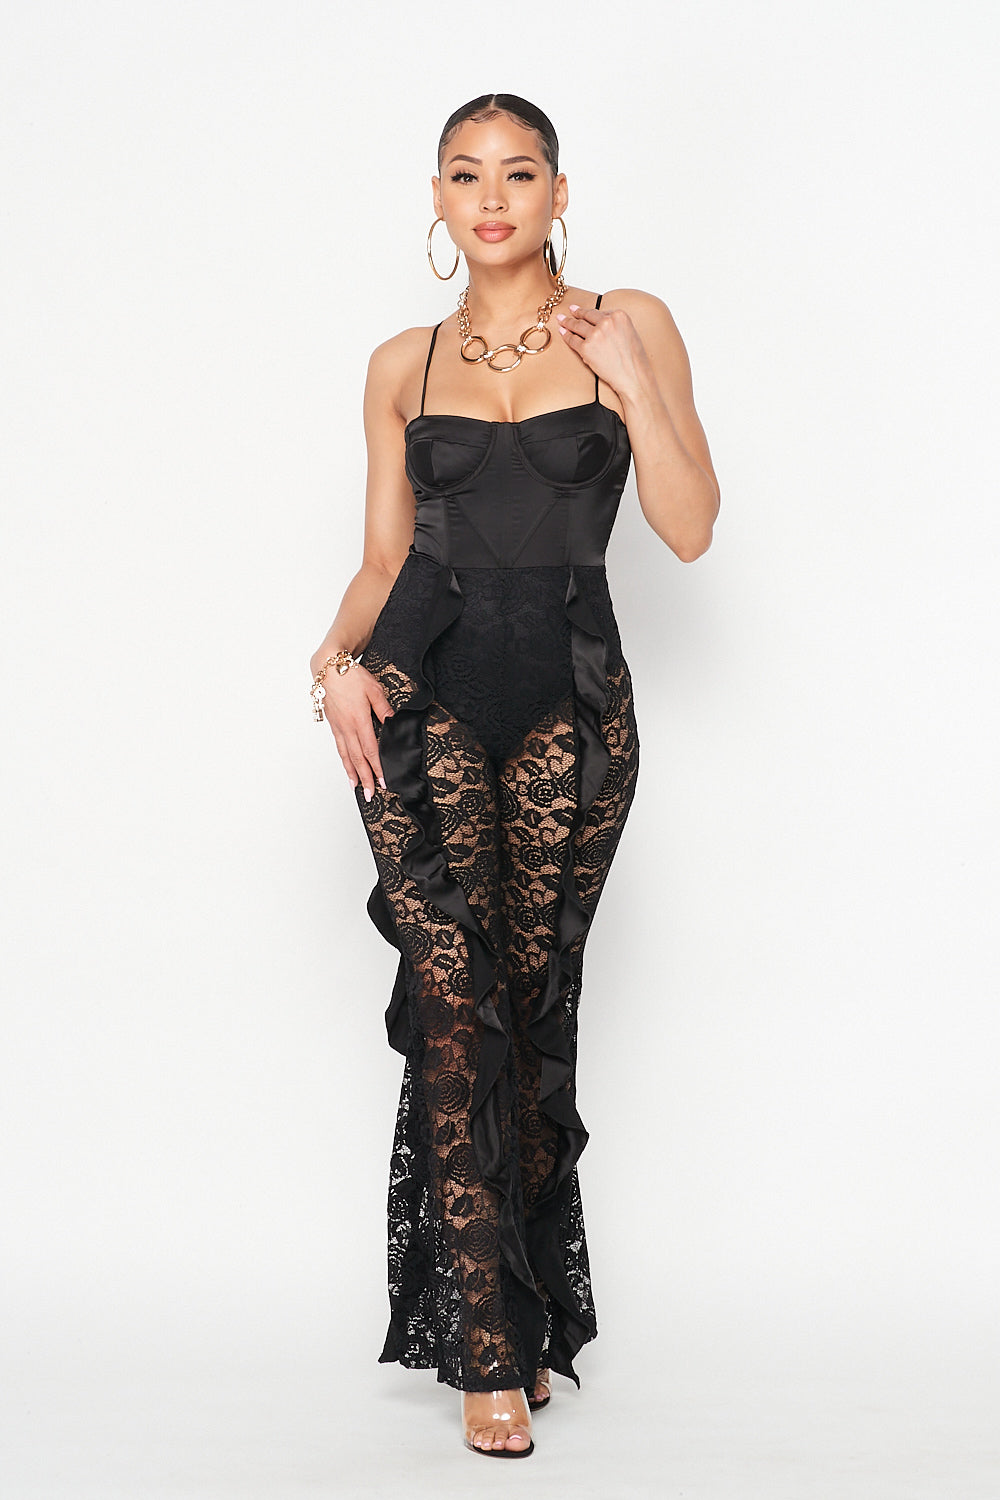 Spaghetti Strap Cami with Lace Pants Jumpsuit - Fashion House USA